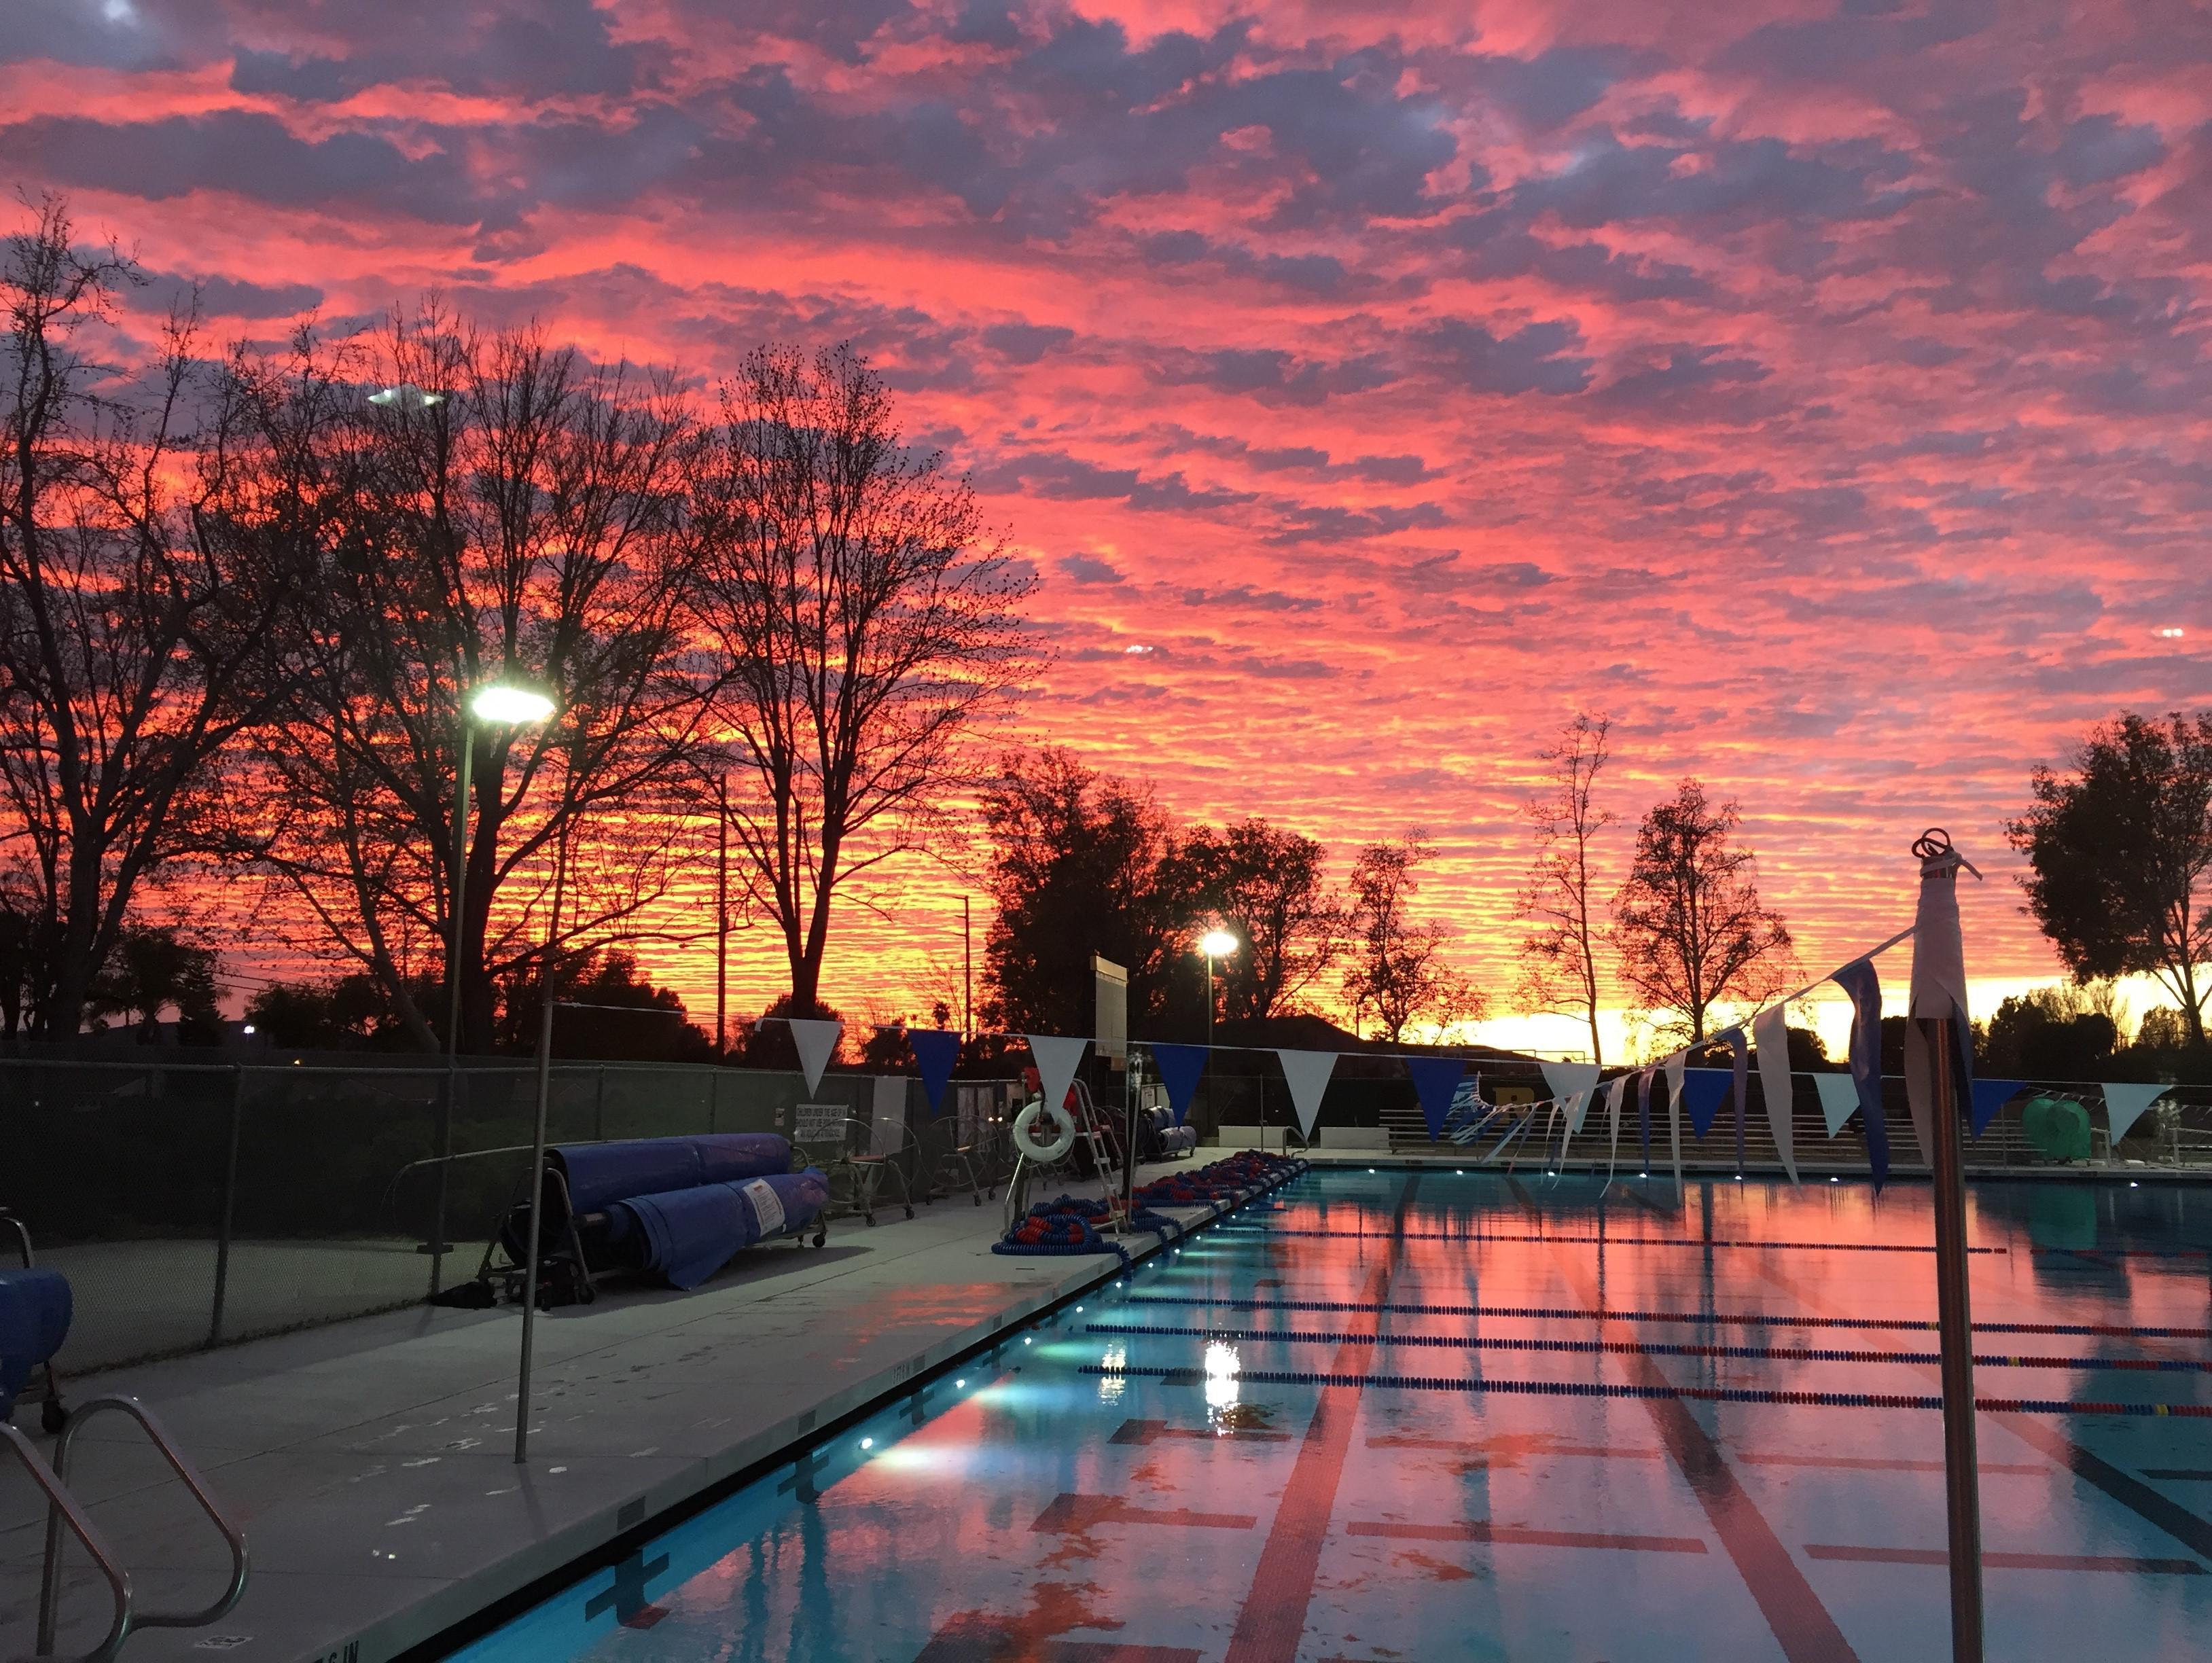 sunset Pool - Copy